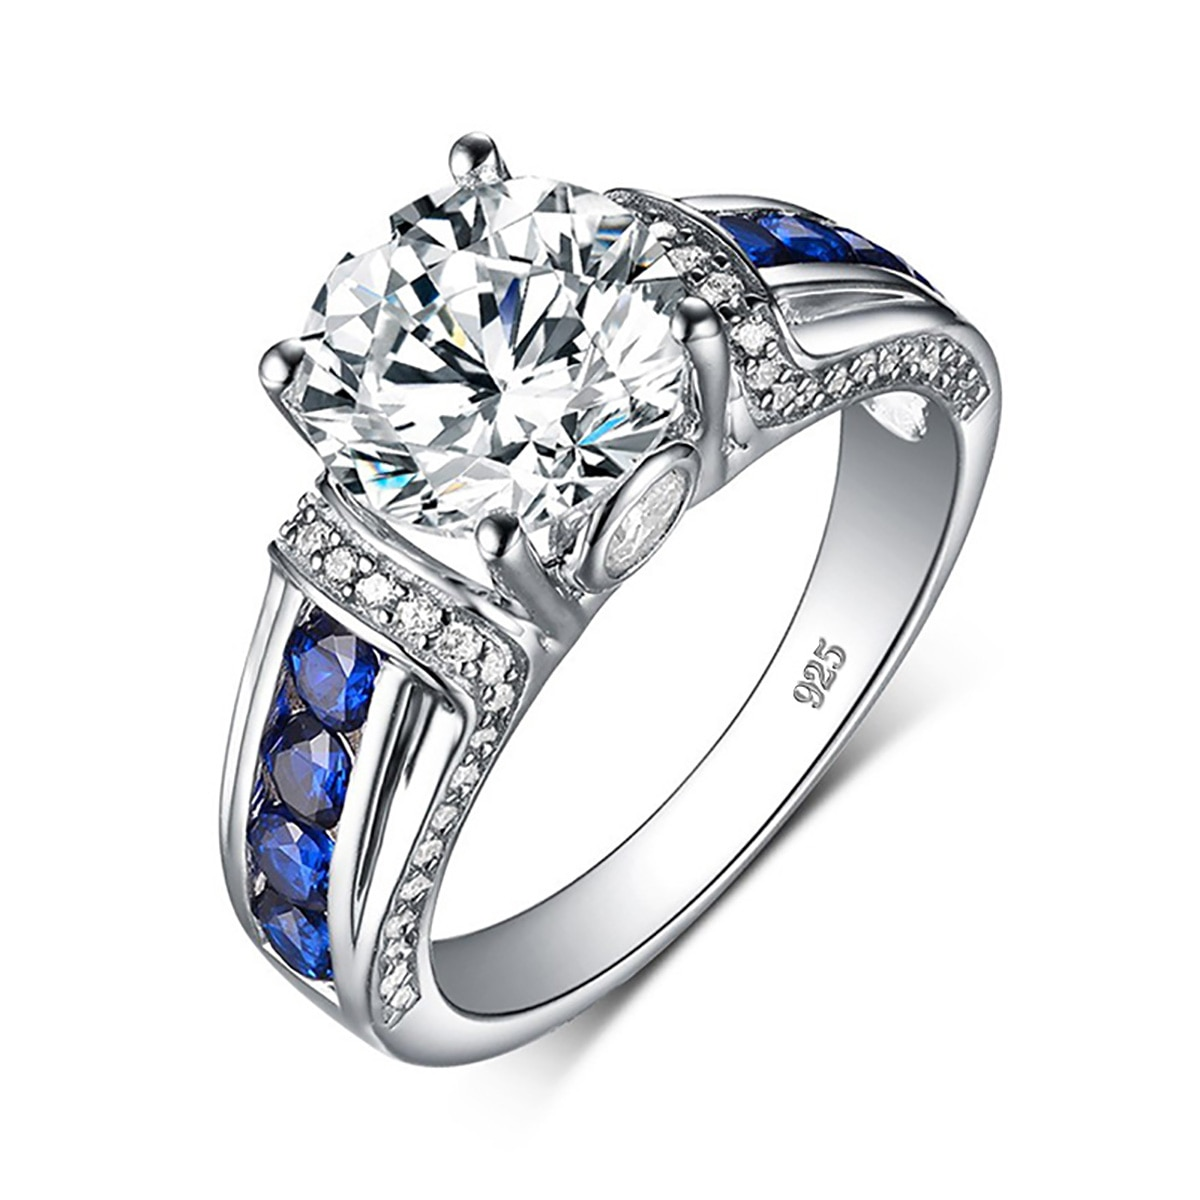 RedWood Brand 2ct Real Moissanite Ring For Women Real 925 Sterling Silver 14K White Gold Plated Diamond Ring  Wedding Jewelry